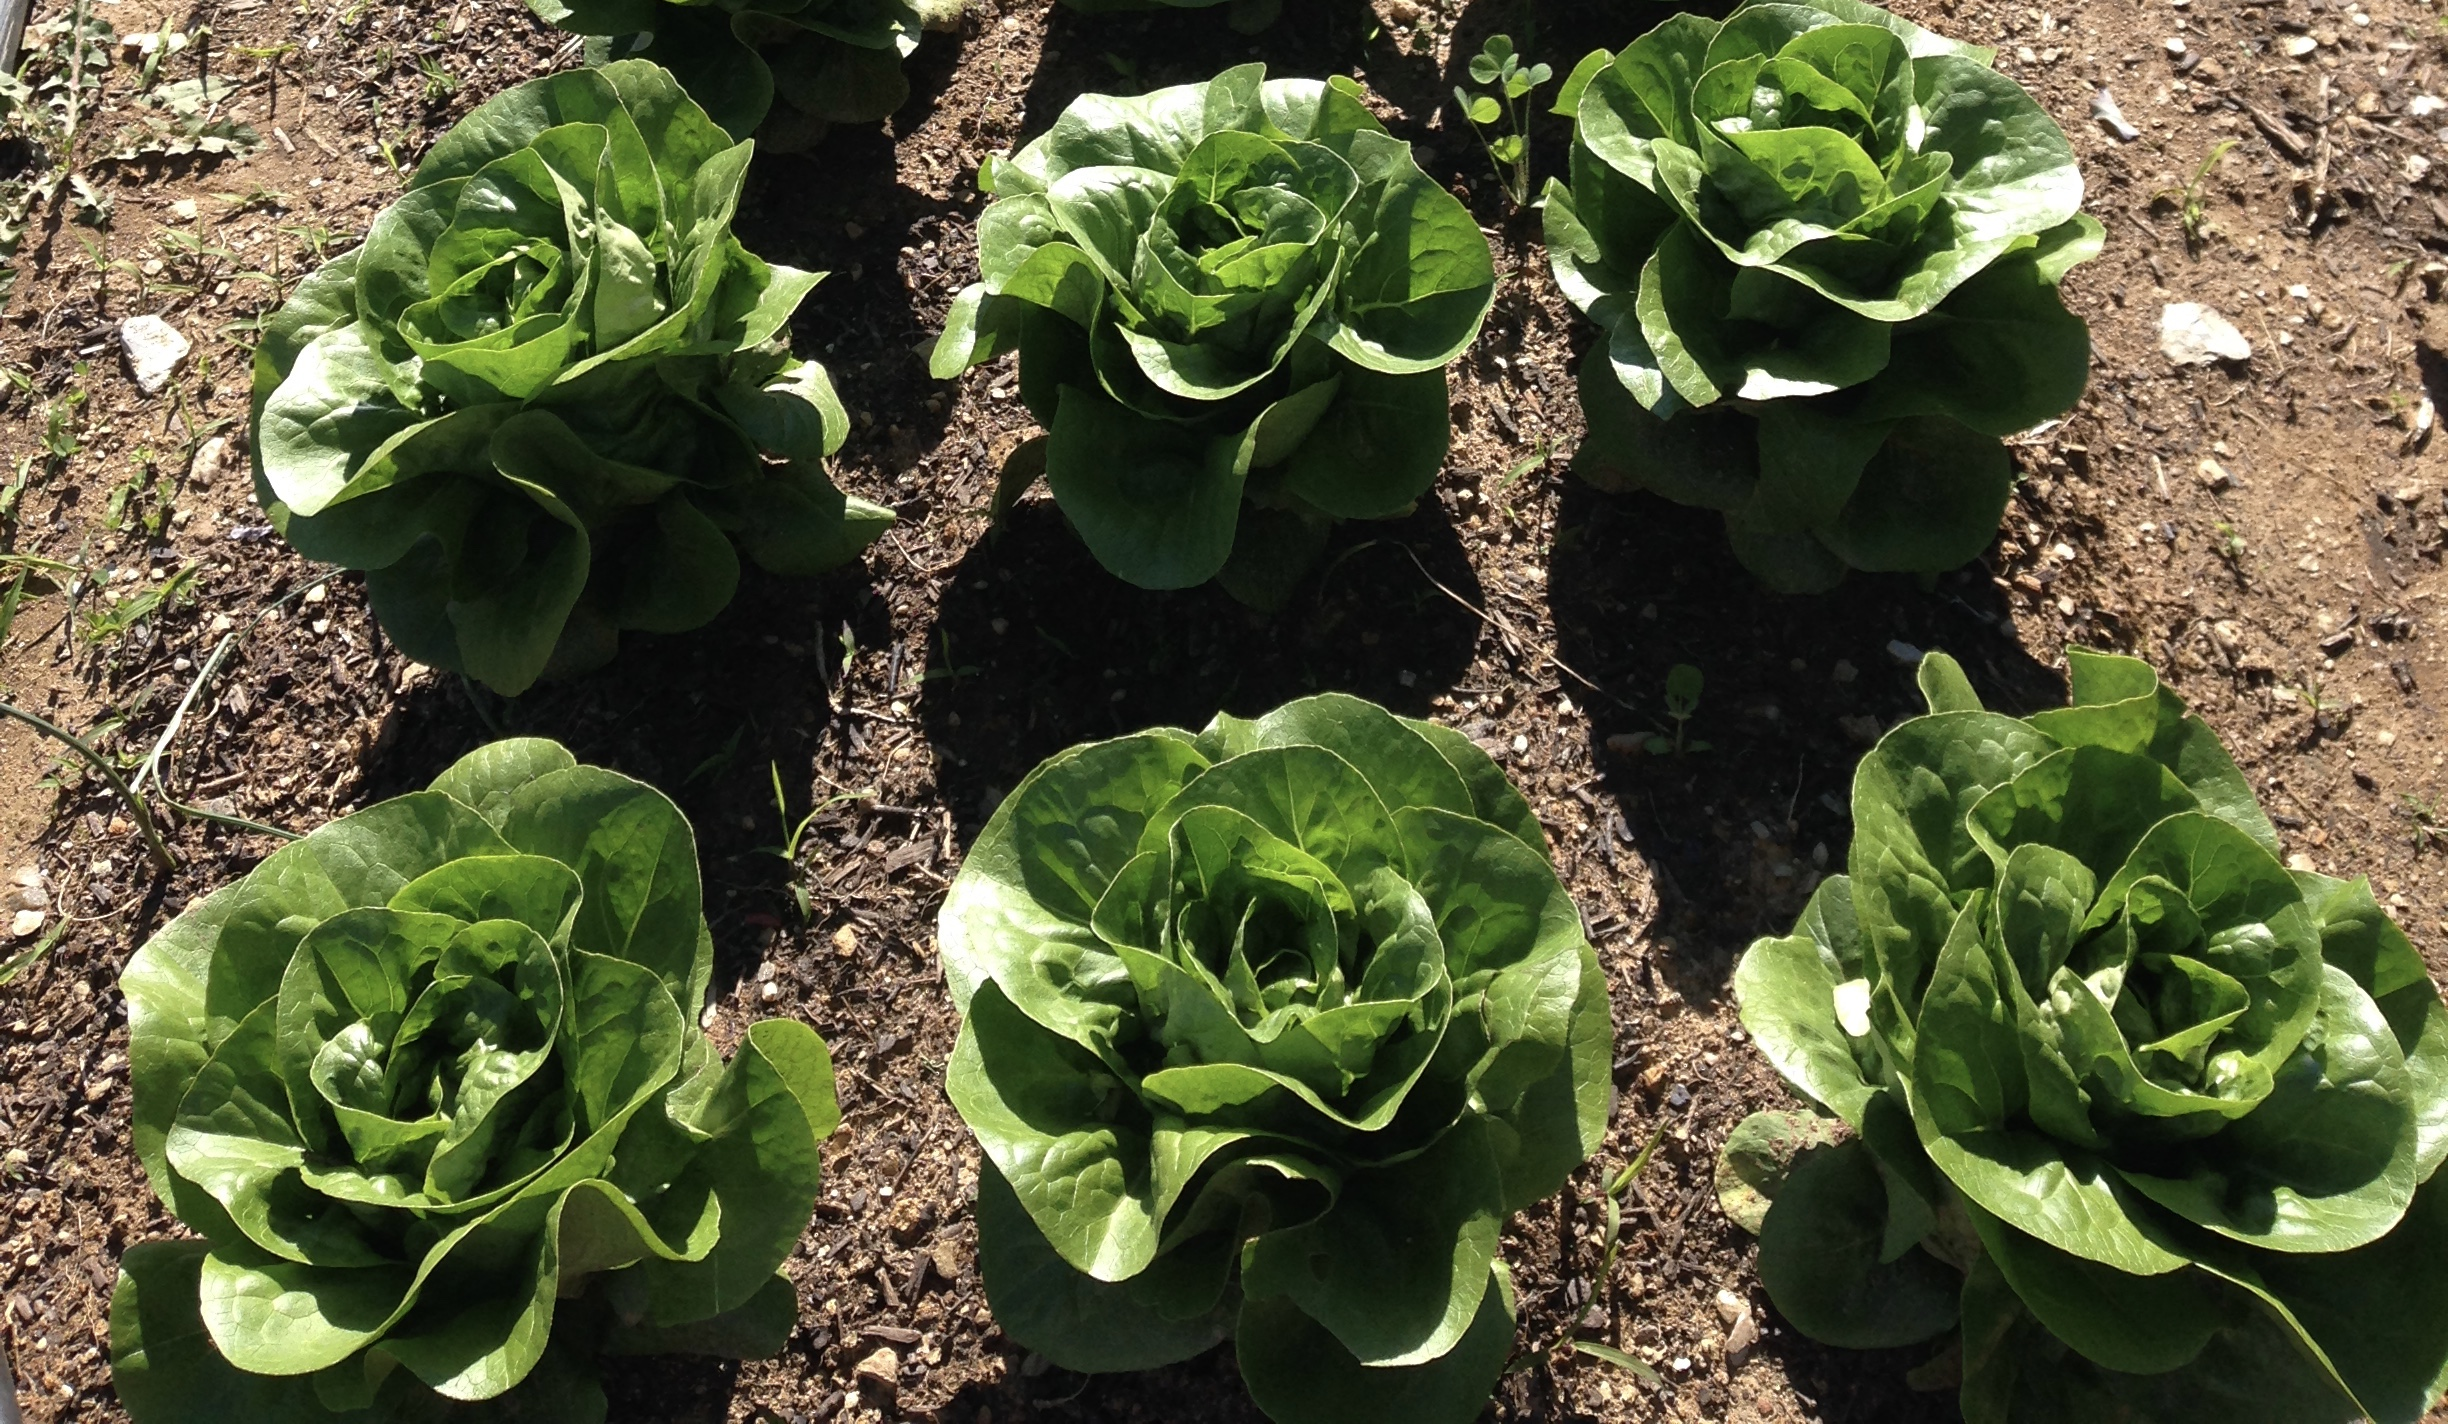 Beautiful little gems of butter lettuce. If you are a salad skeptic (I was), try some home grown. It's a game changer.